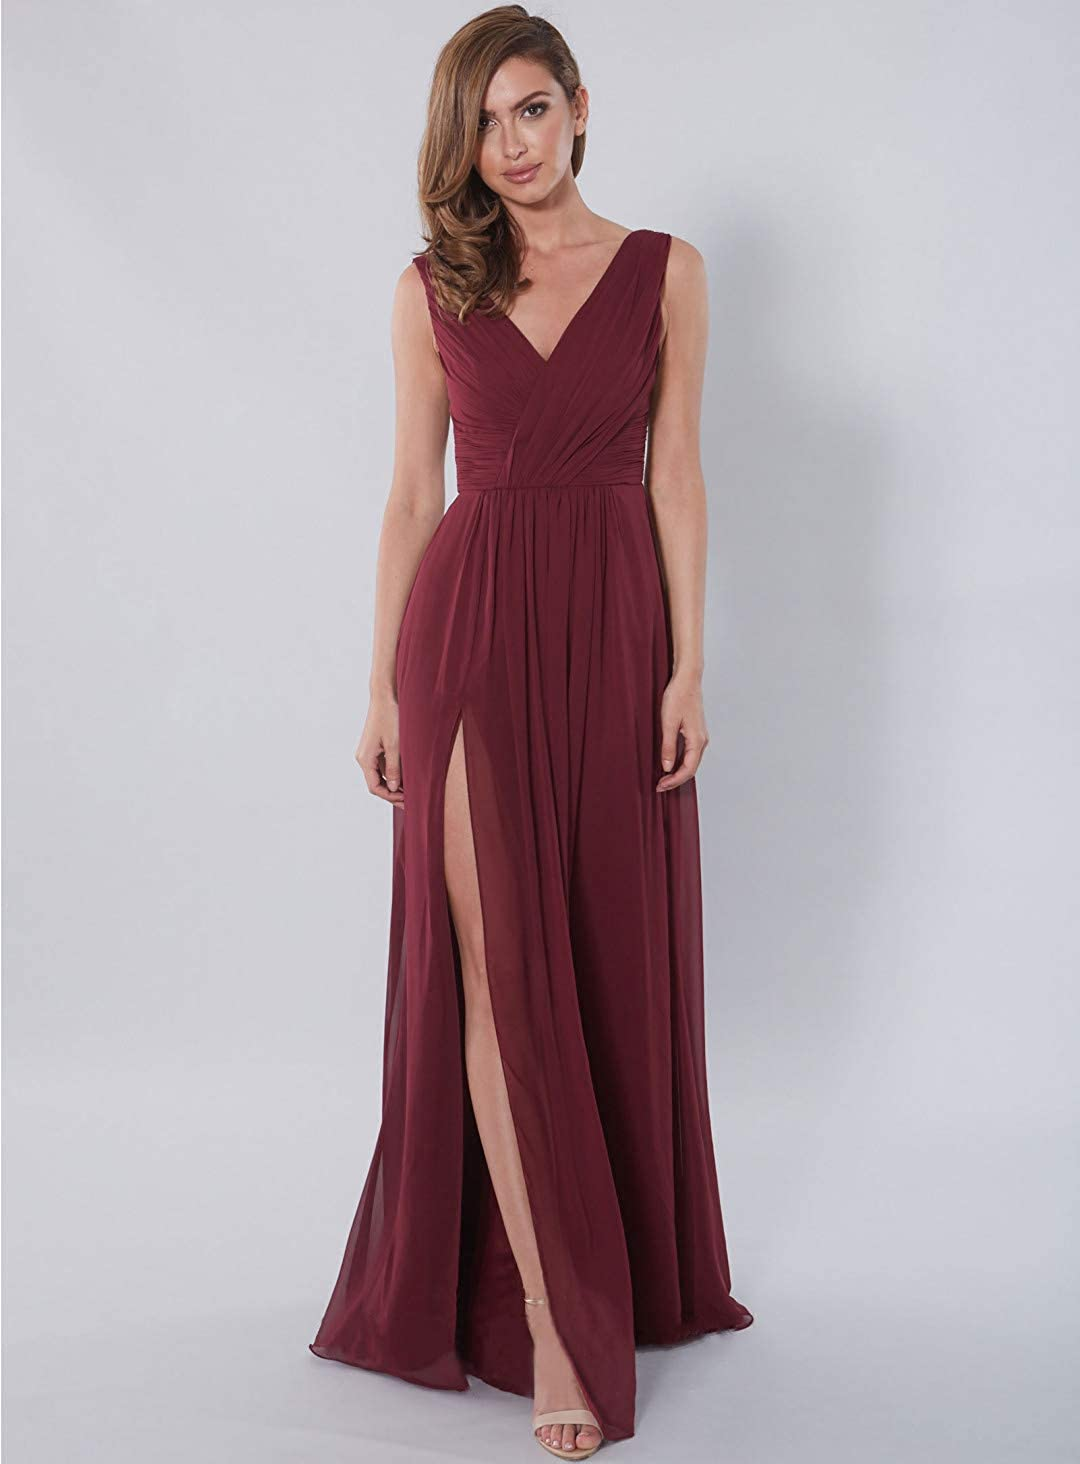 Nicefashion Women's V-Neck Chiffon Bridesmaid Dress Long A-Line Pleated Evening Gown with Slit